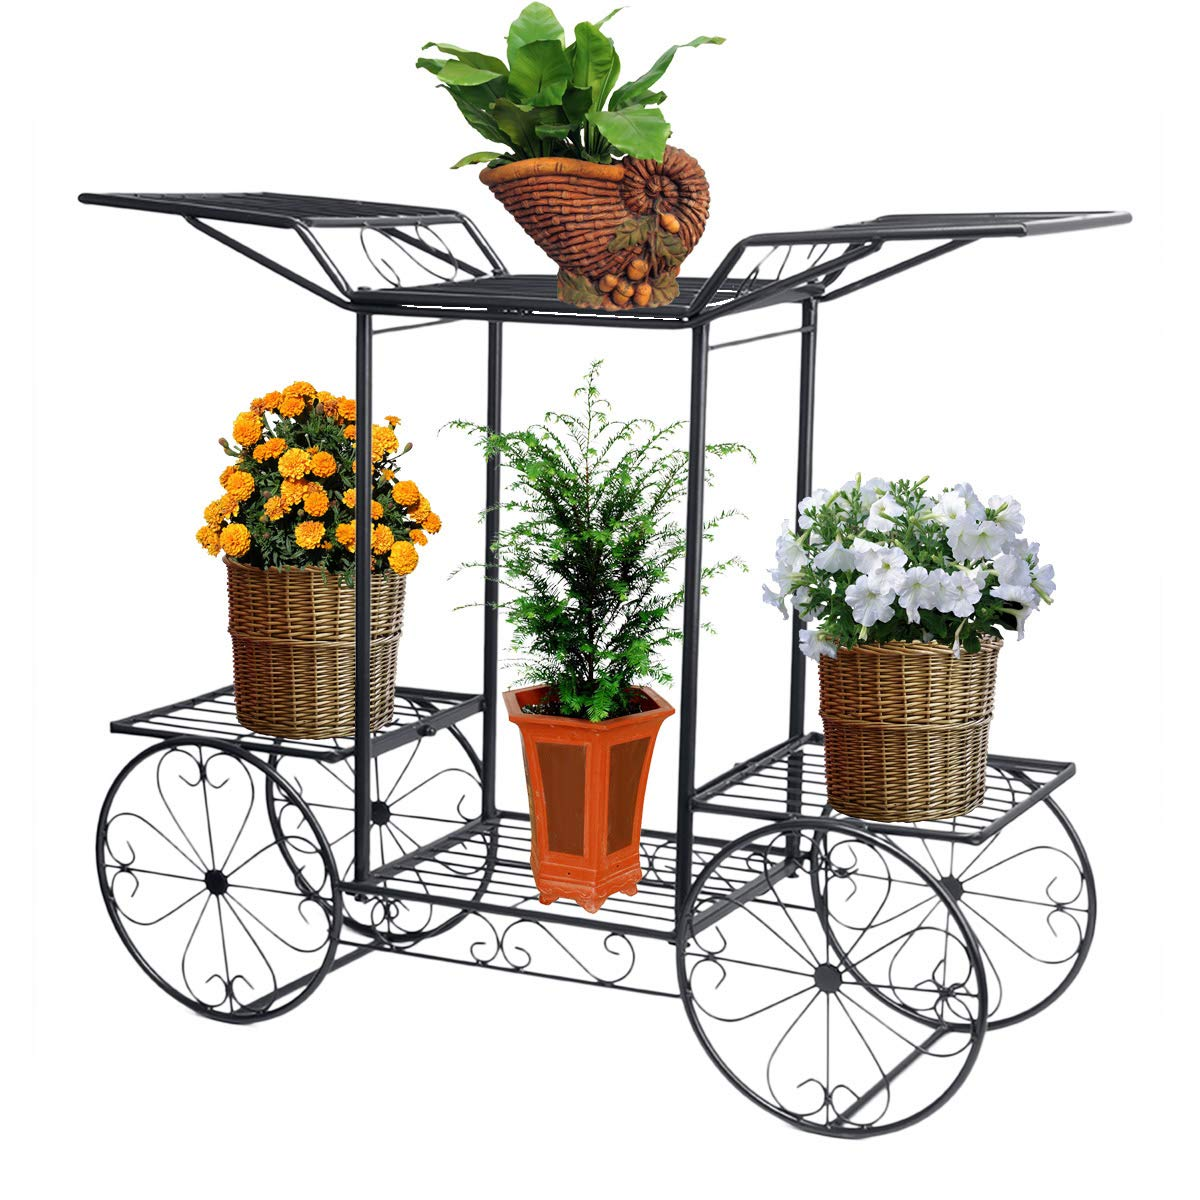 Dazone Metal Cart Flower Rack Display Garden Tree Home Decor Patio Plant Stand Holder